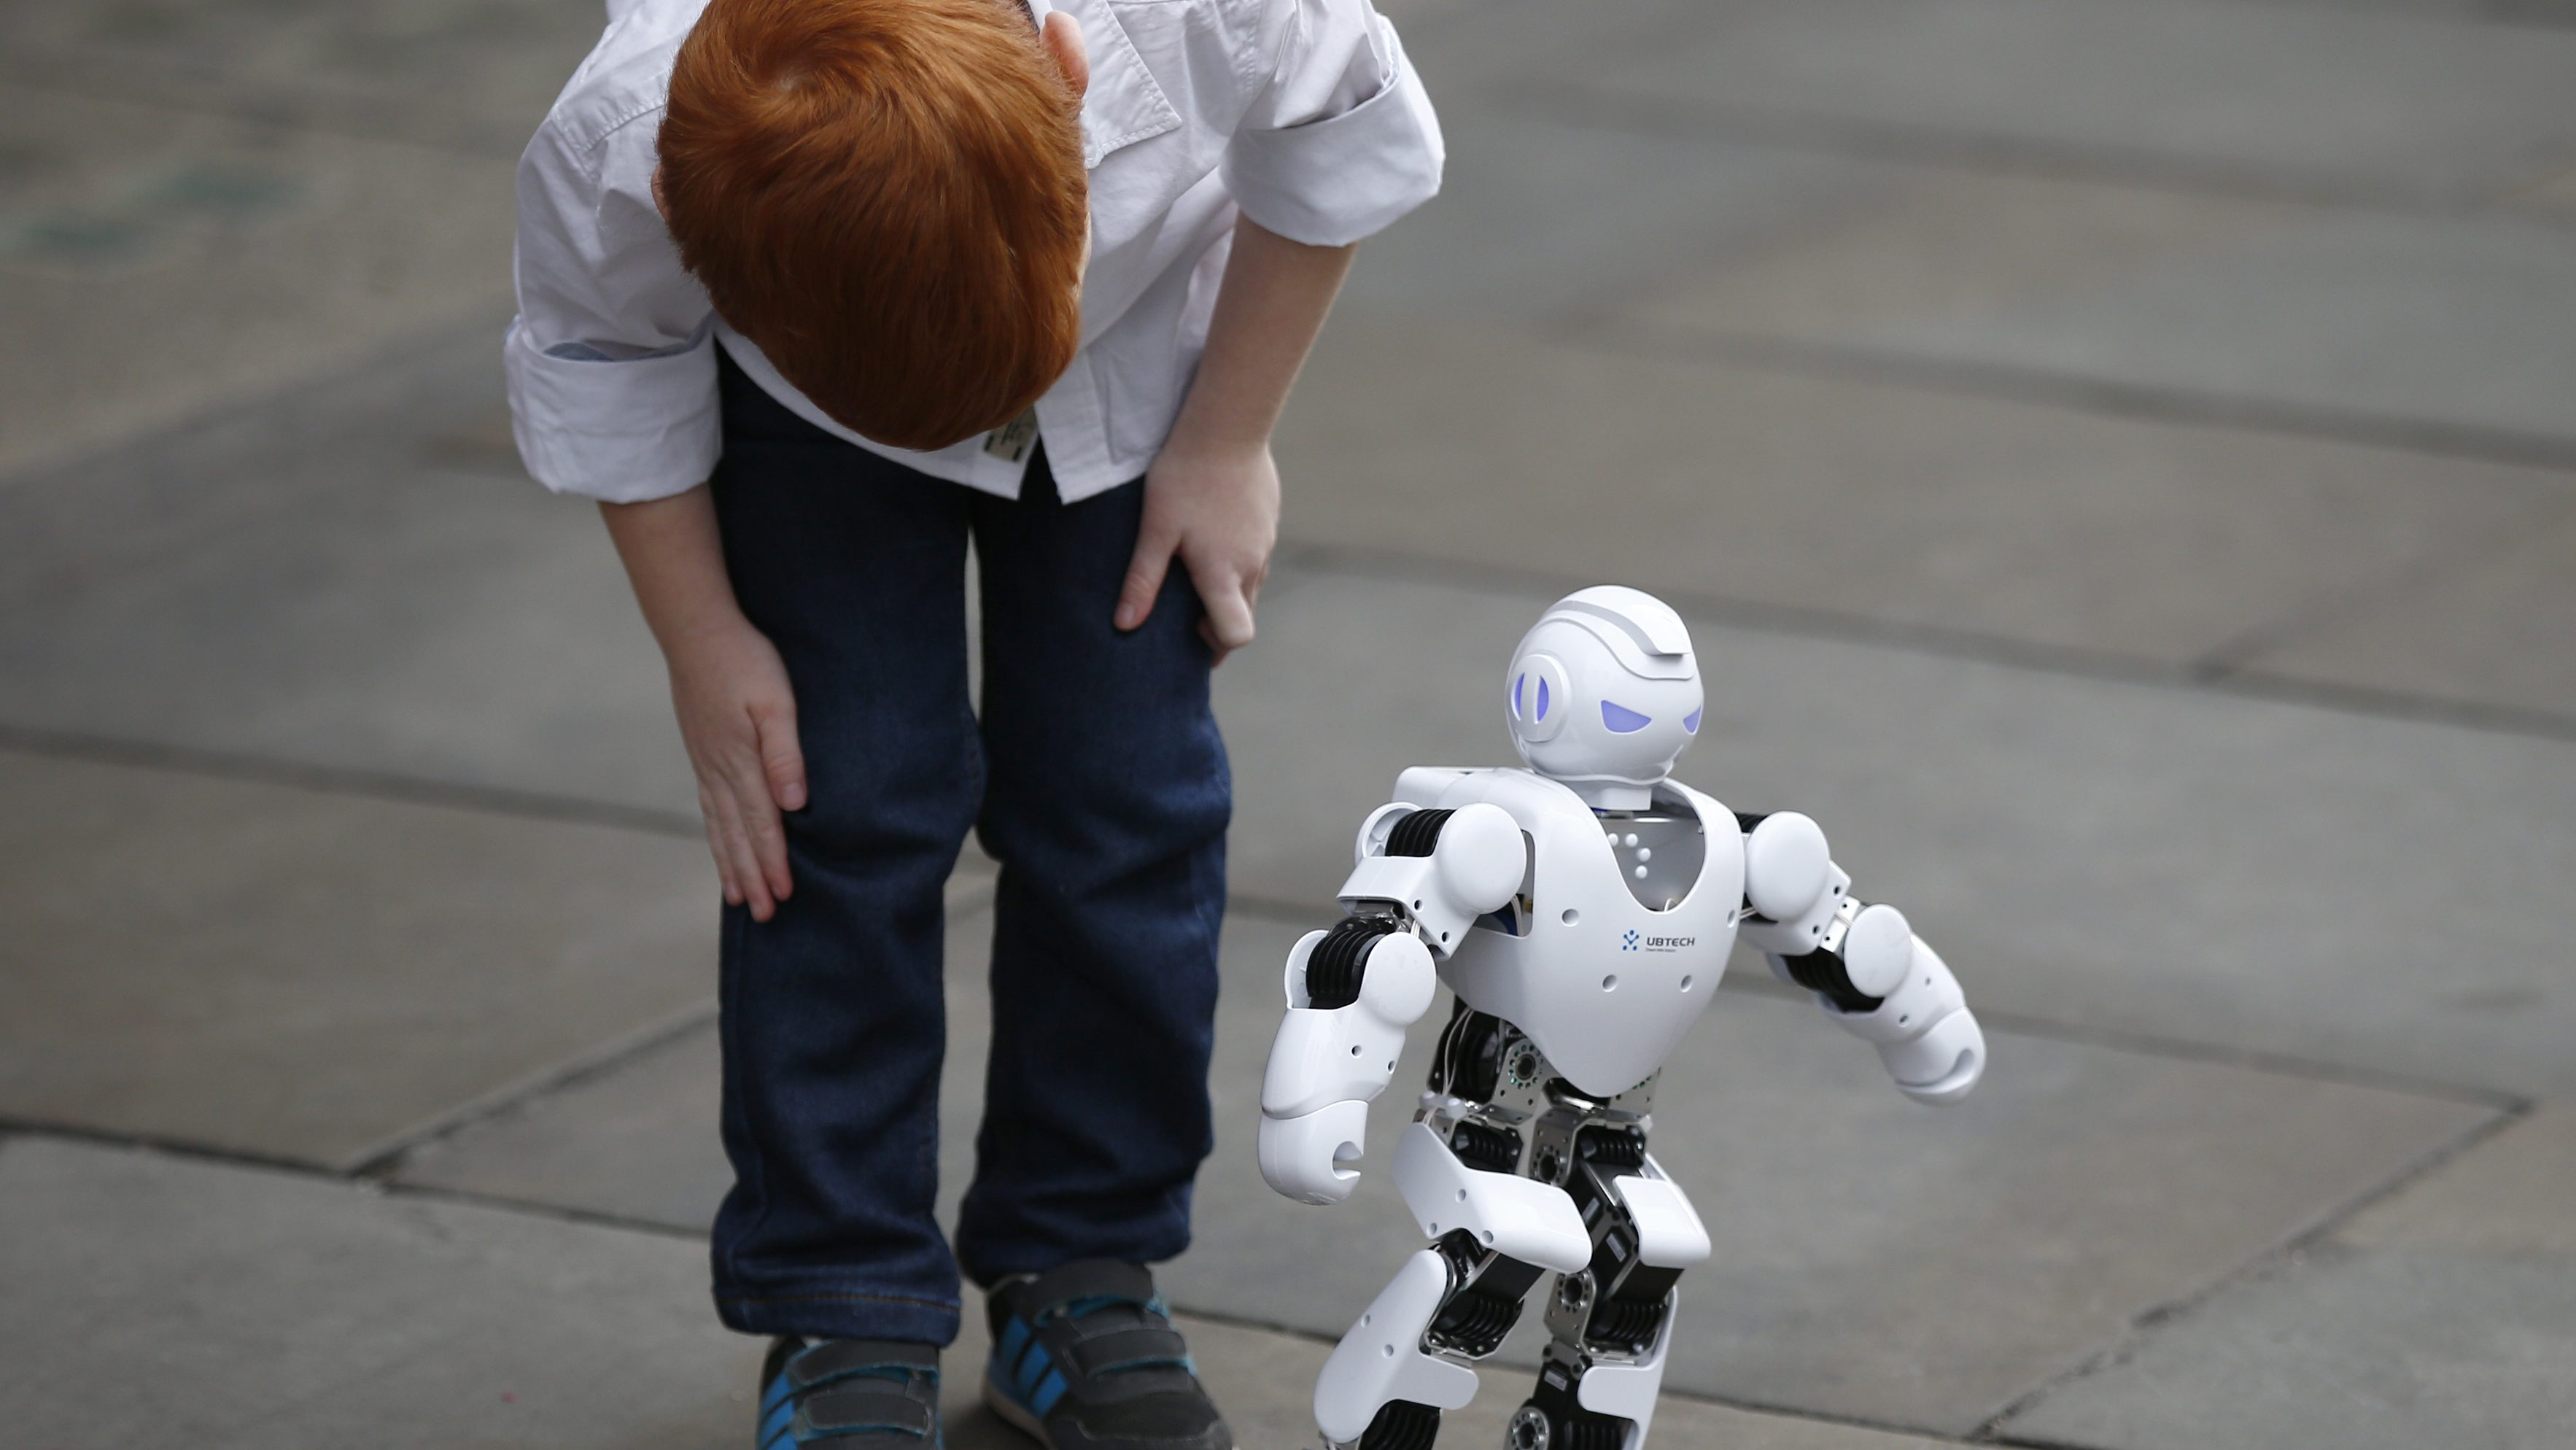 The Alpha 1S Robot is observed by Tristan Robertson-Jeyes, aged five, at the launch of Hamley's predicted top ten toys that will be on children's lists this Christmas, in London, Britain October 6, 2016.